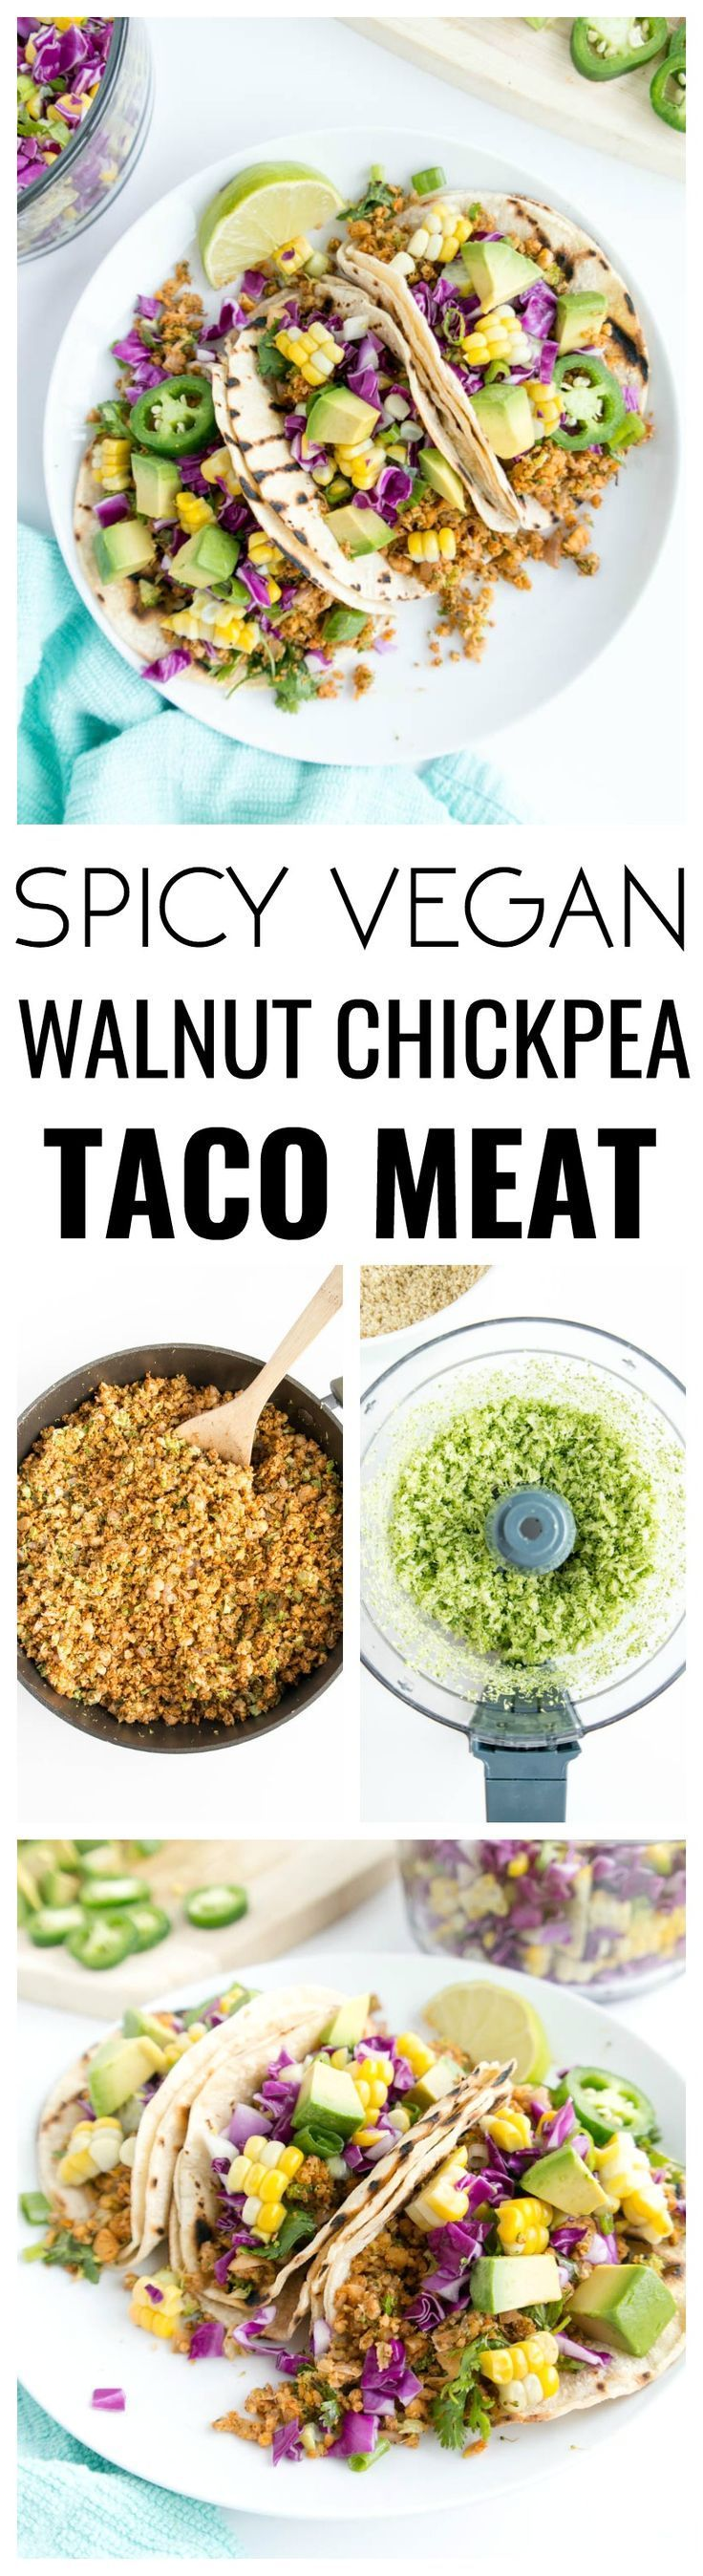 Spicy Walnut Chickpea Taco Meat » The Glowing Fridge